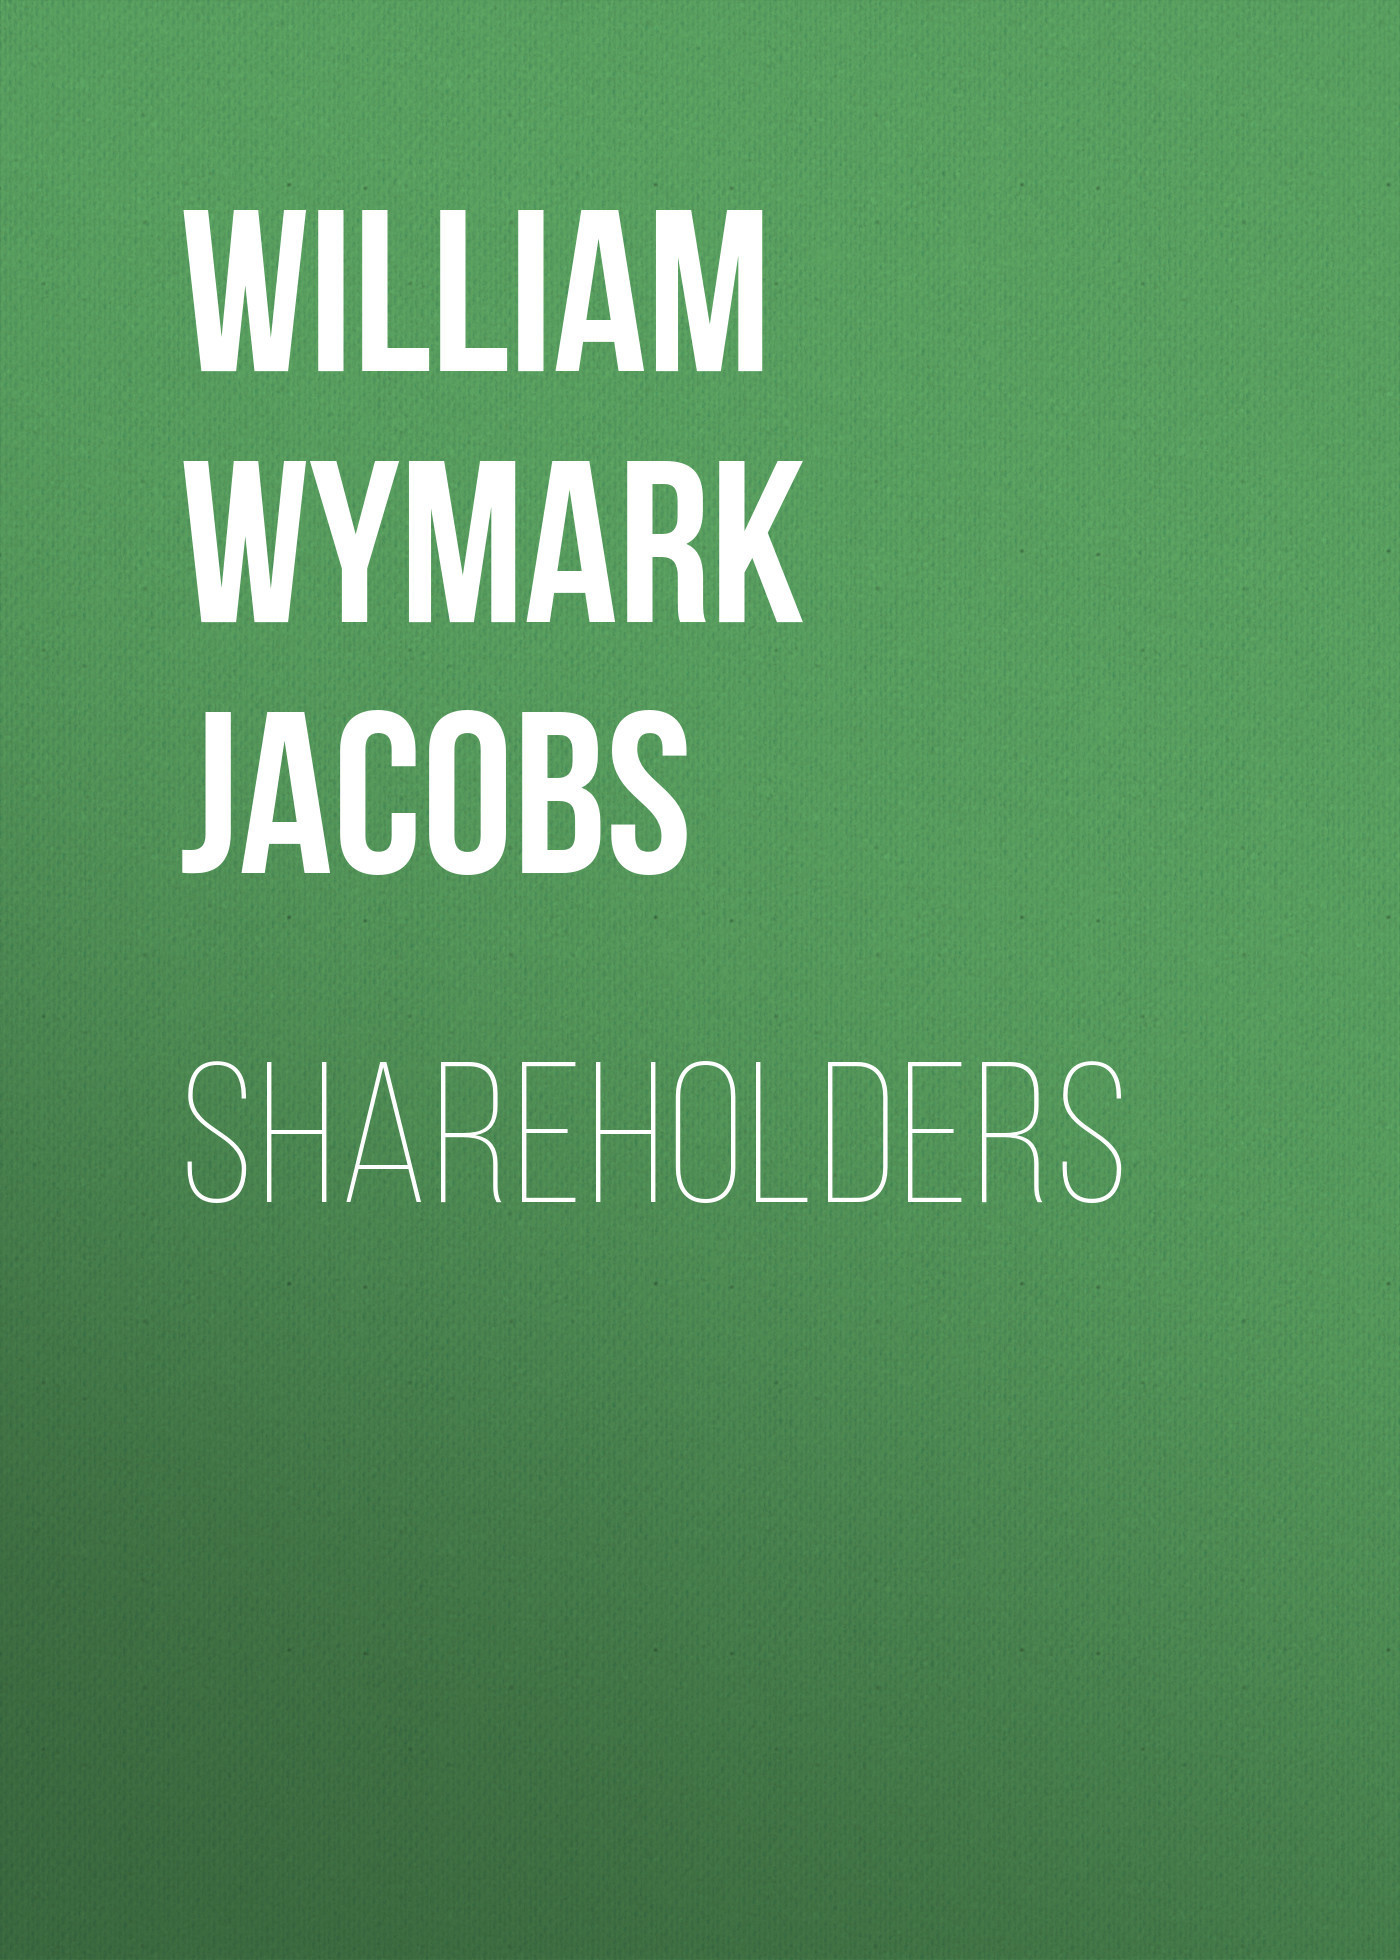 William Wymark Jacobs Shareholders william wymark jacobs admiral peters